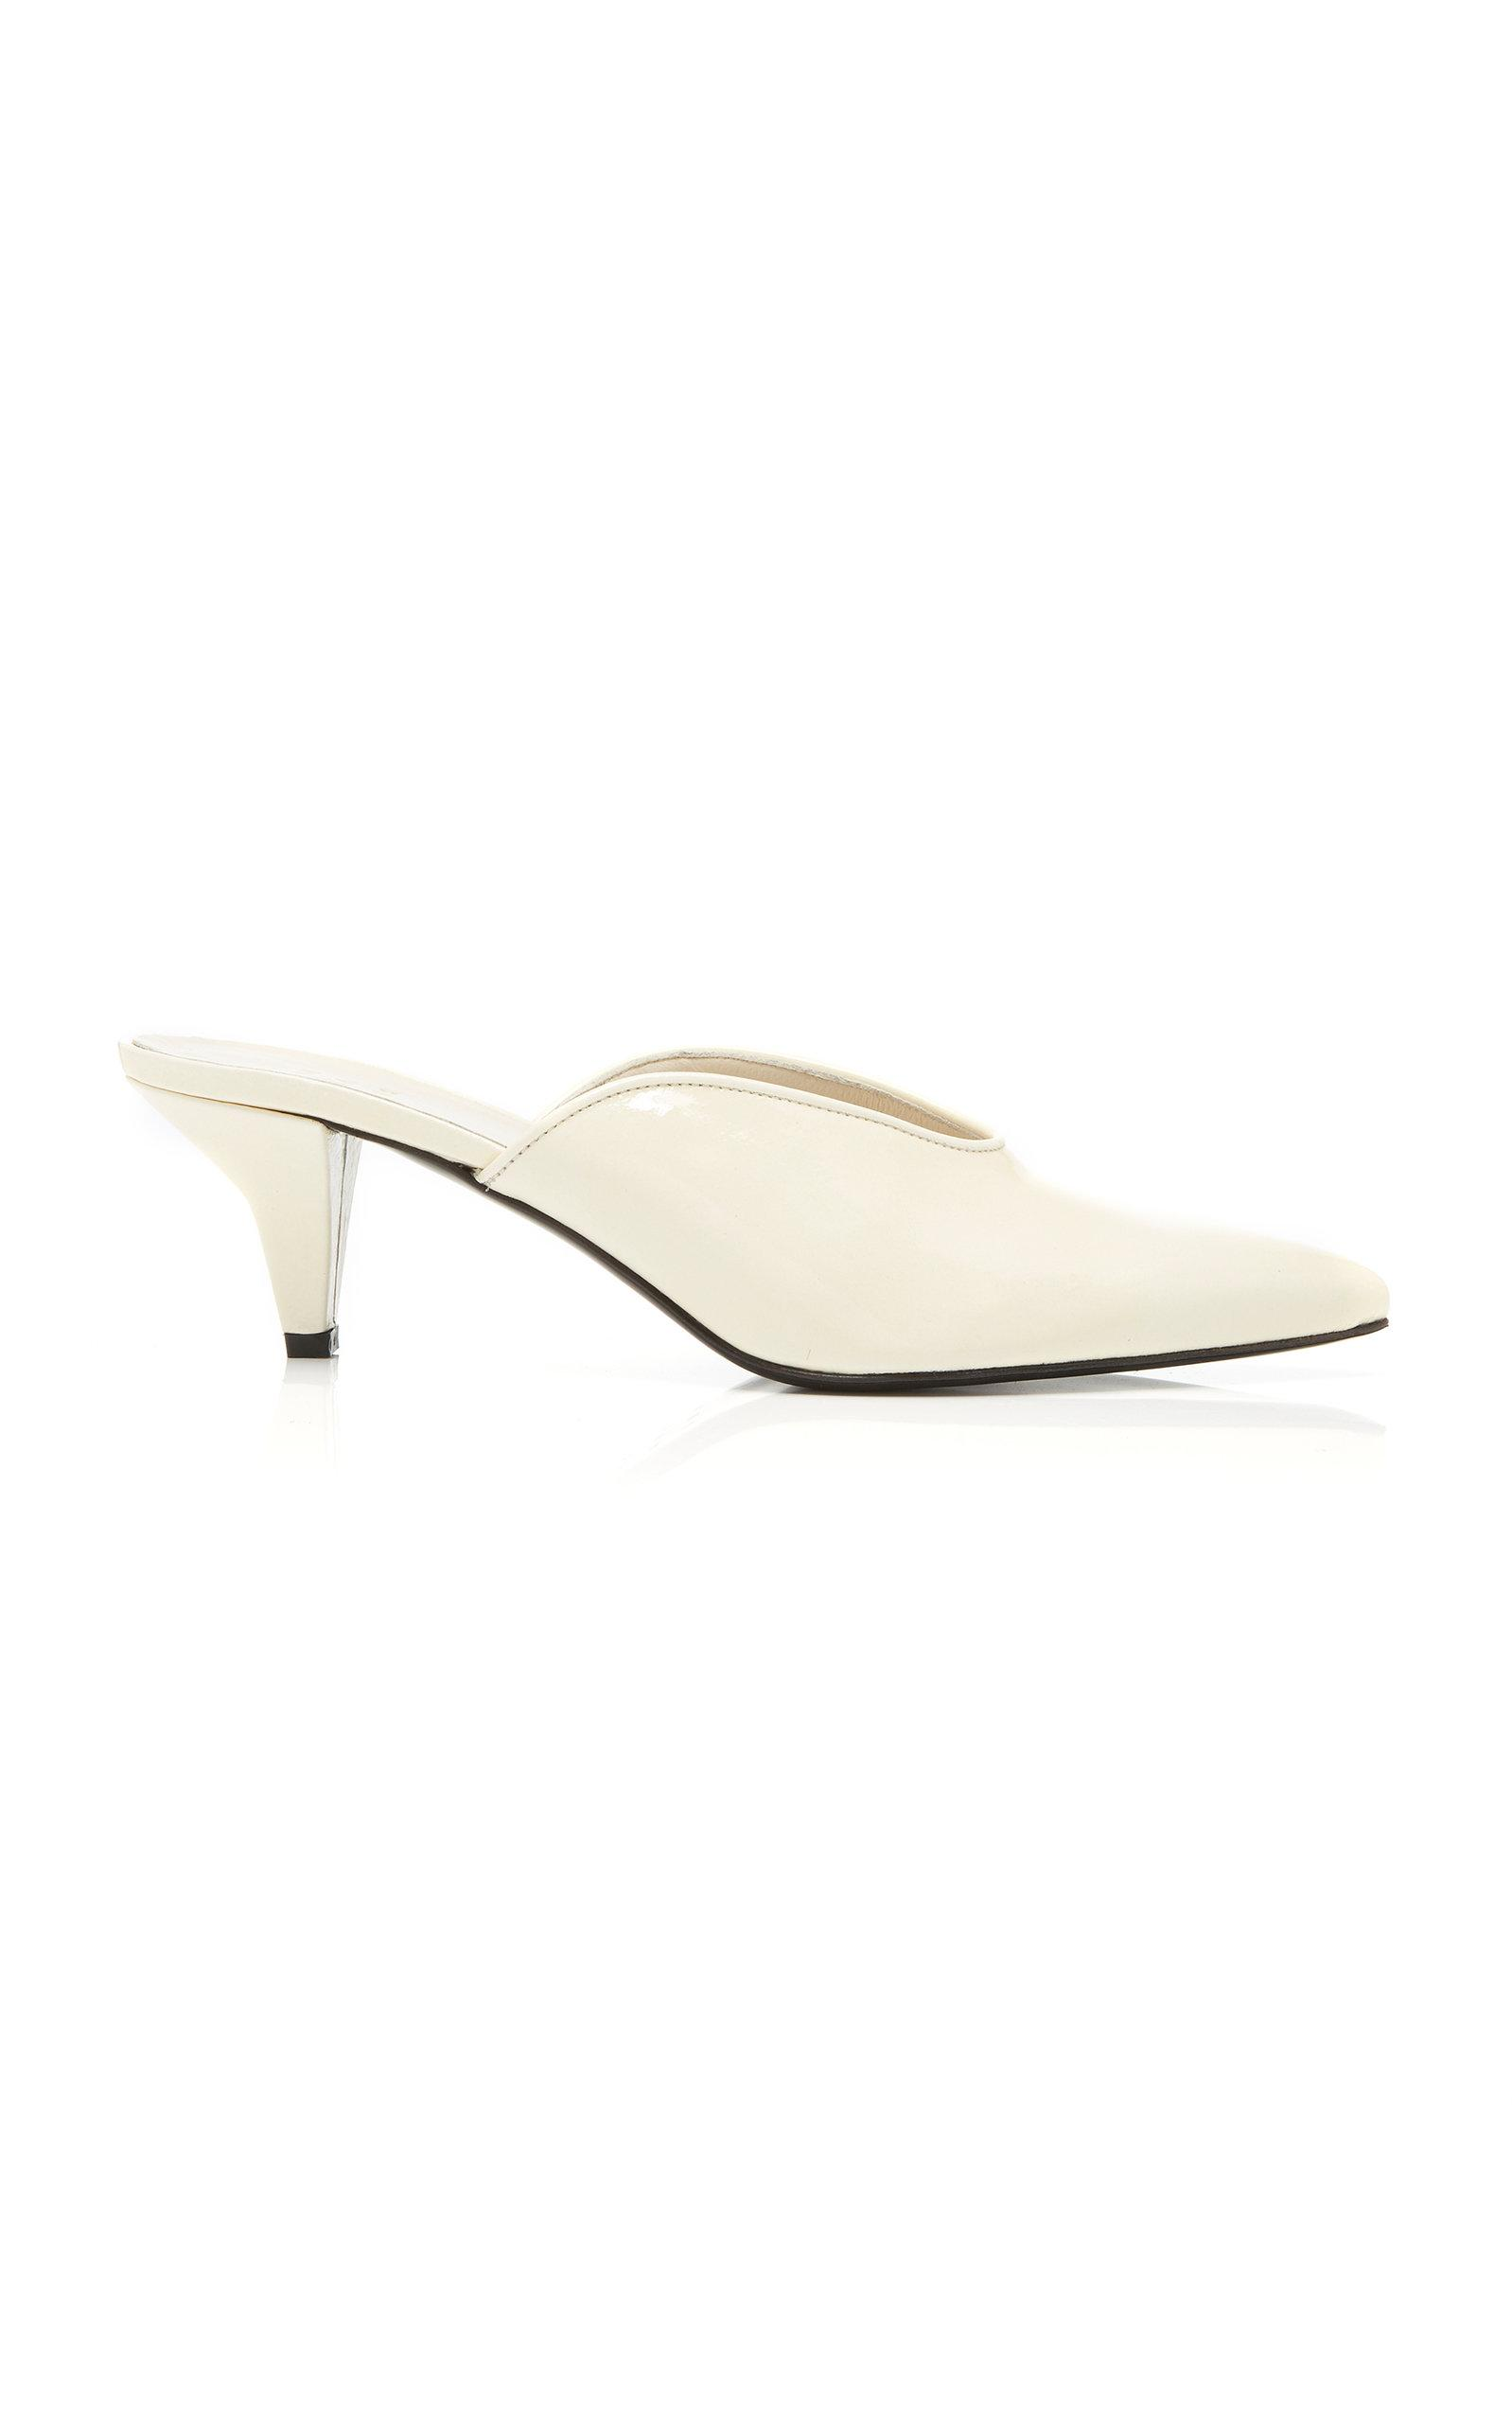 Trademark Ruby Patent Mule In White